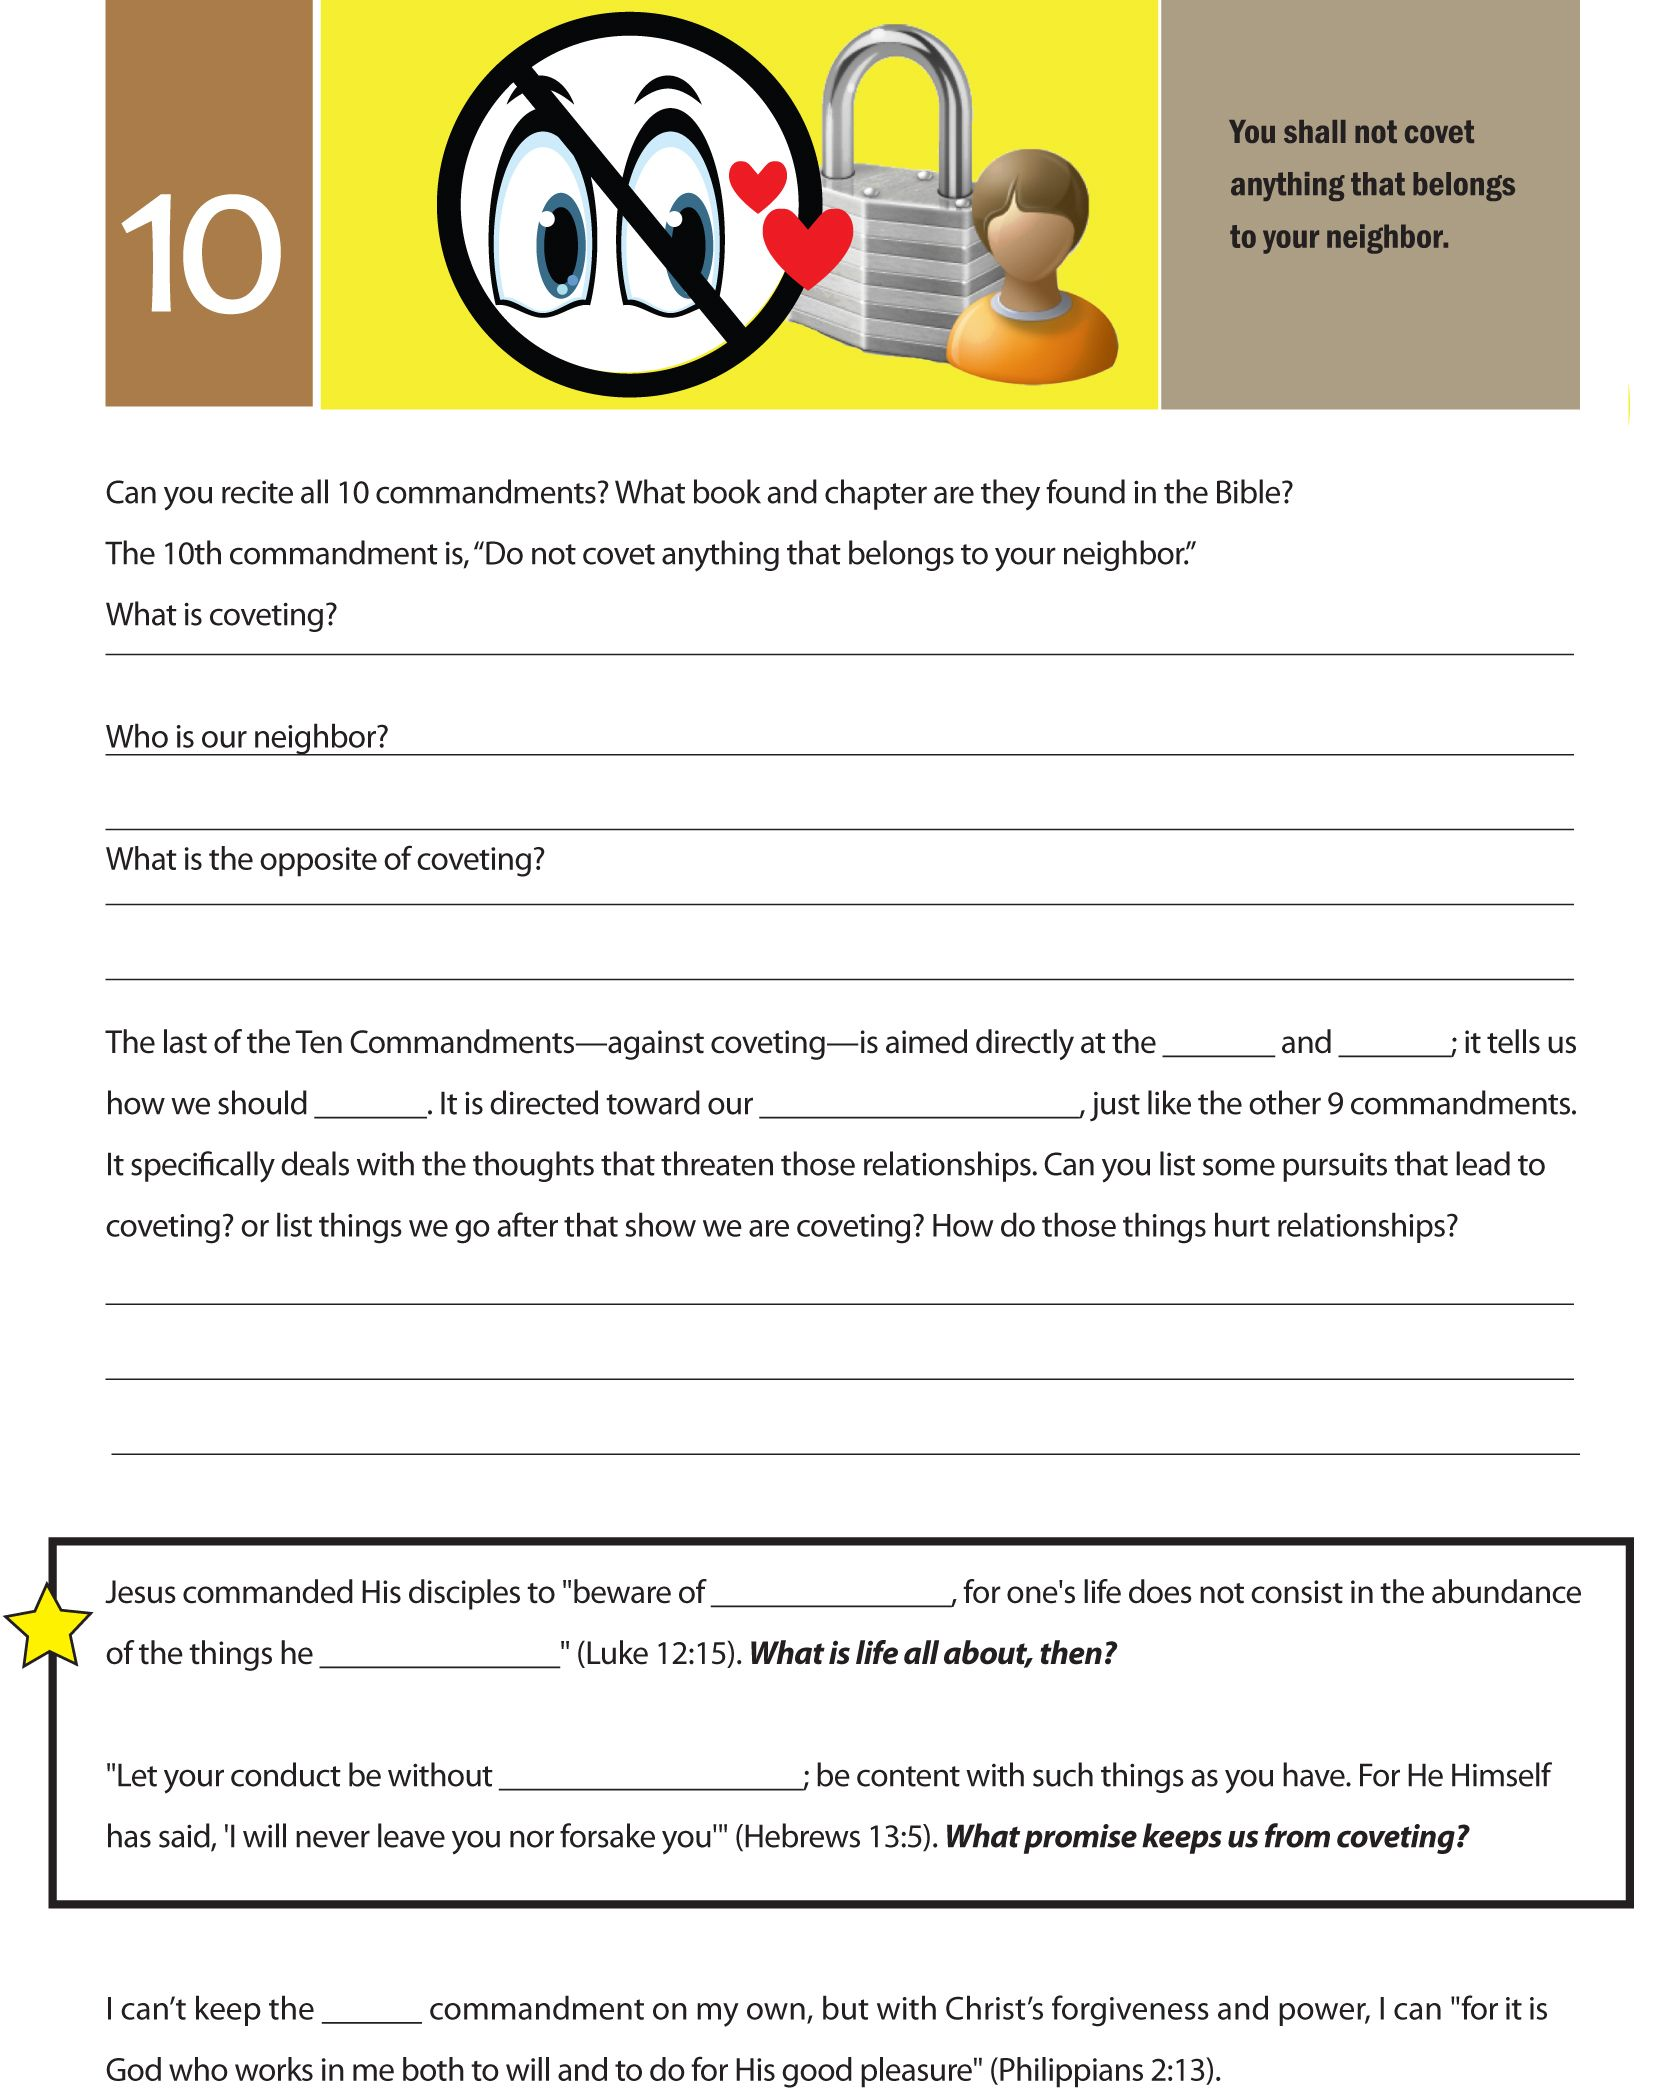 Worksheet To Teach The Tenth Of The 10 Commandments Do Not Covet Anything That Belongs To Your